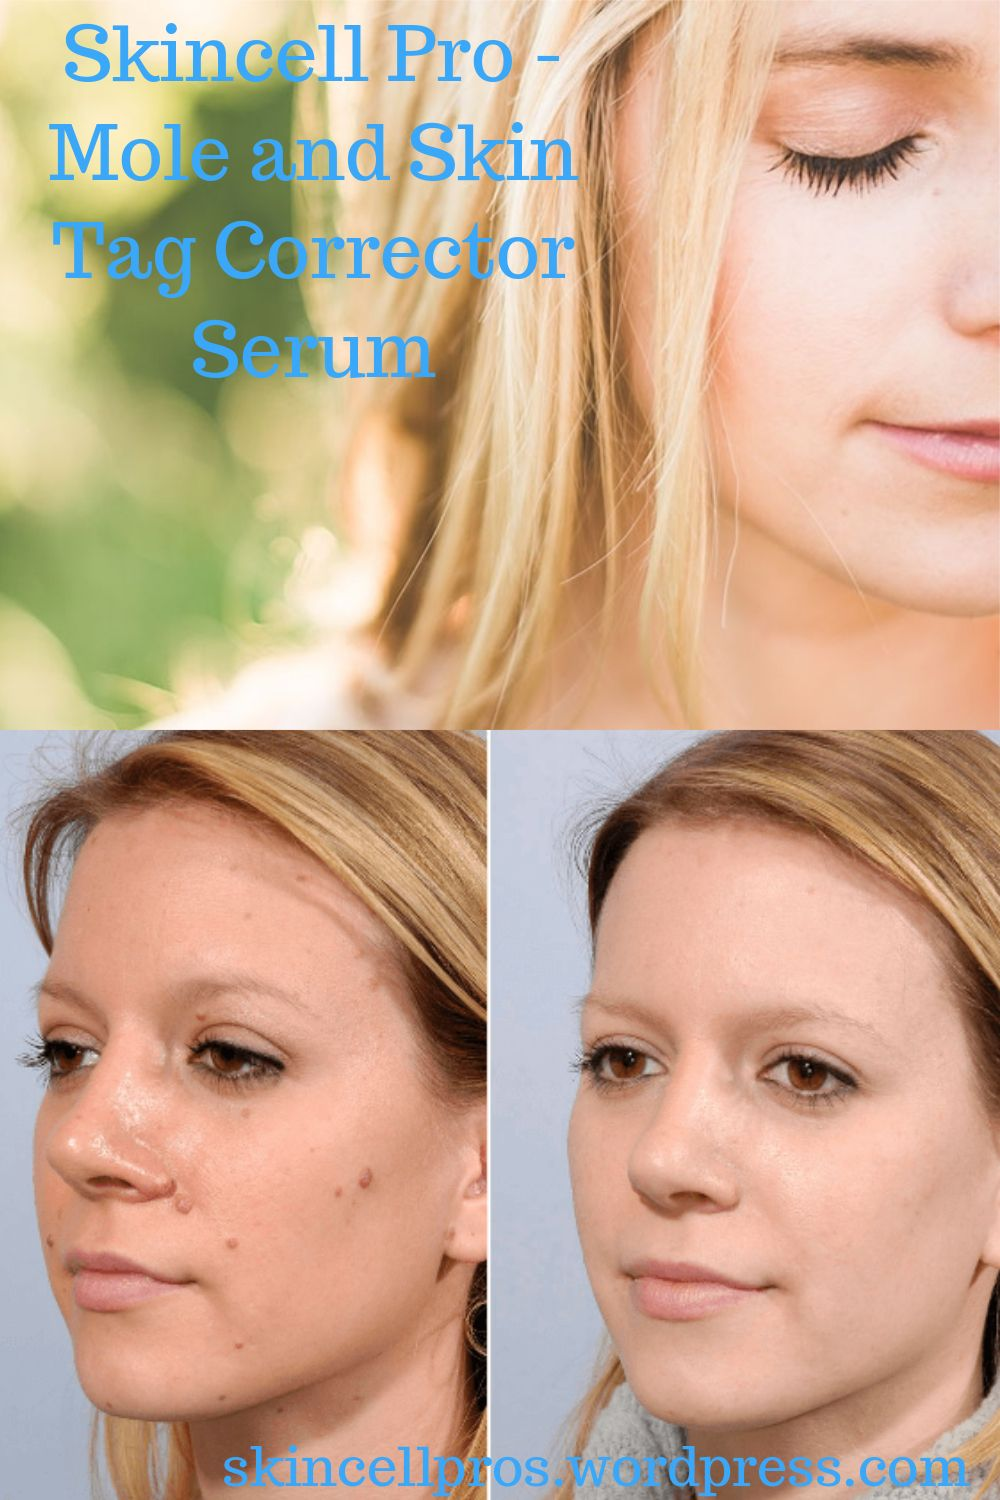 Do you have unsightly moles or skin tags? Try Skincell..